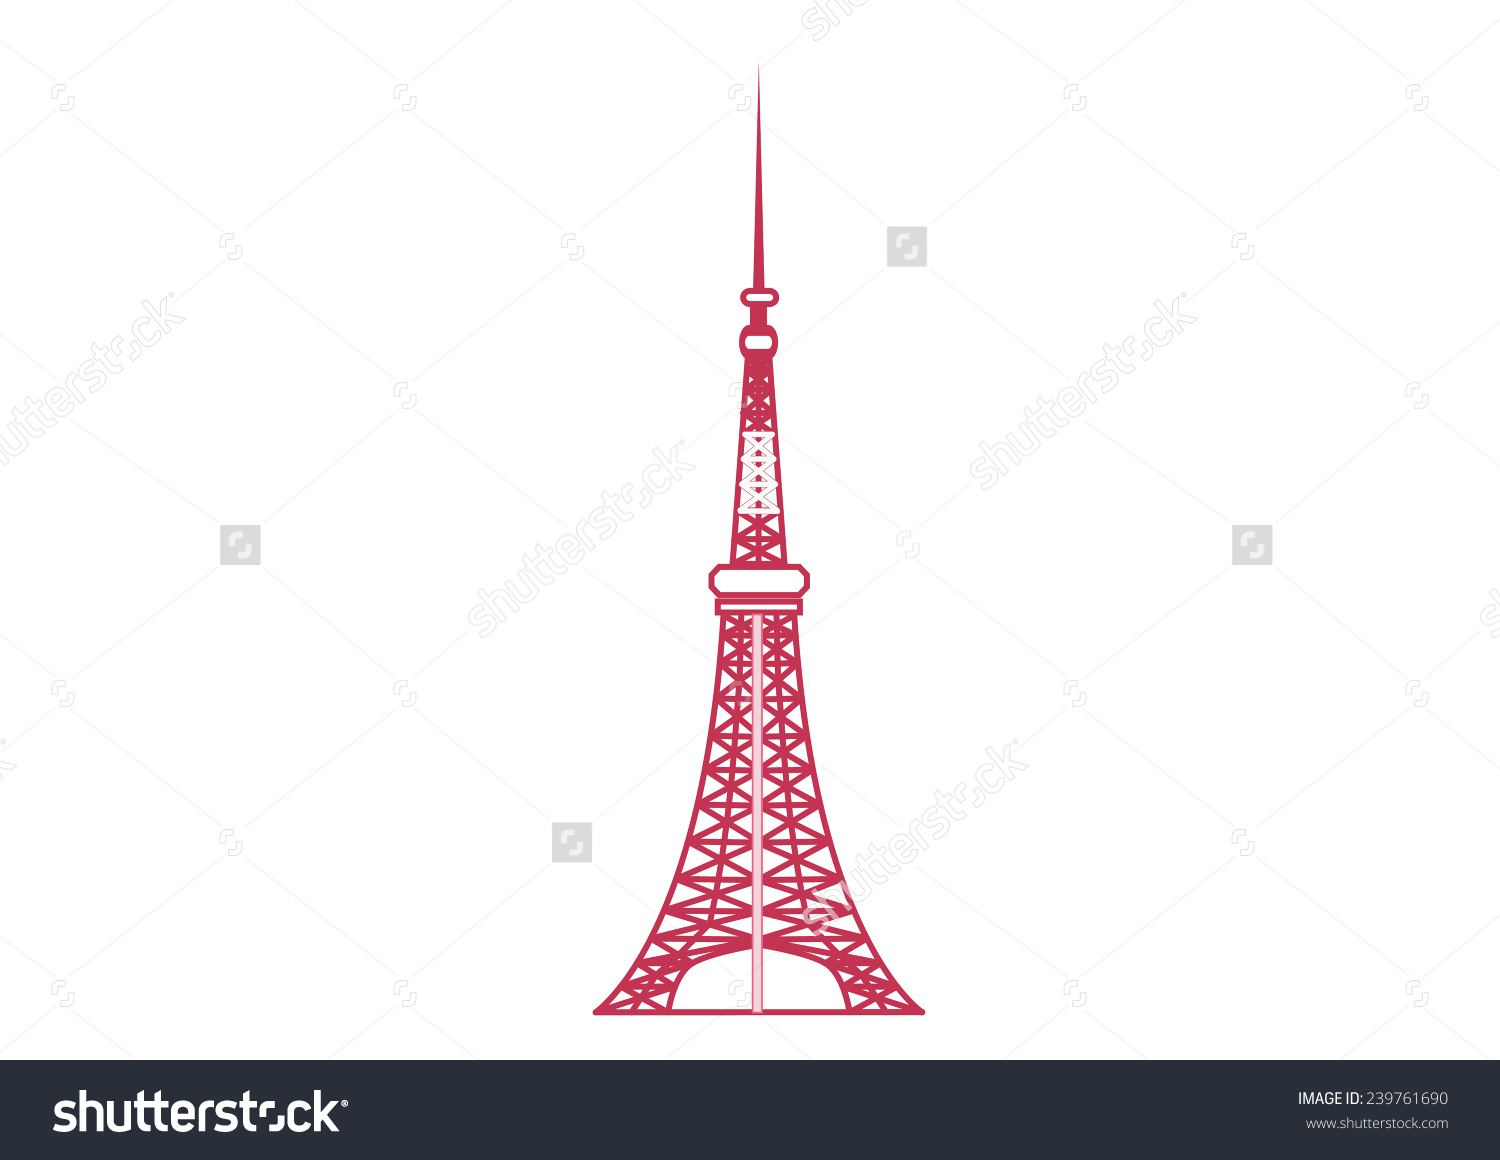 Tokyo clipart Tokyo Tower Clipart Images Tokyo – clipart 4306